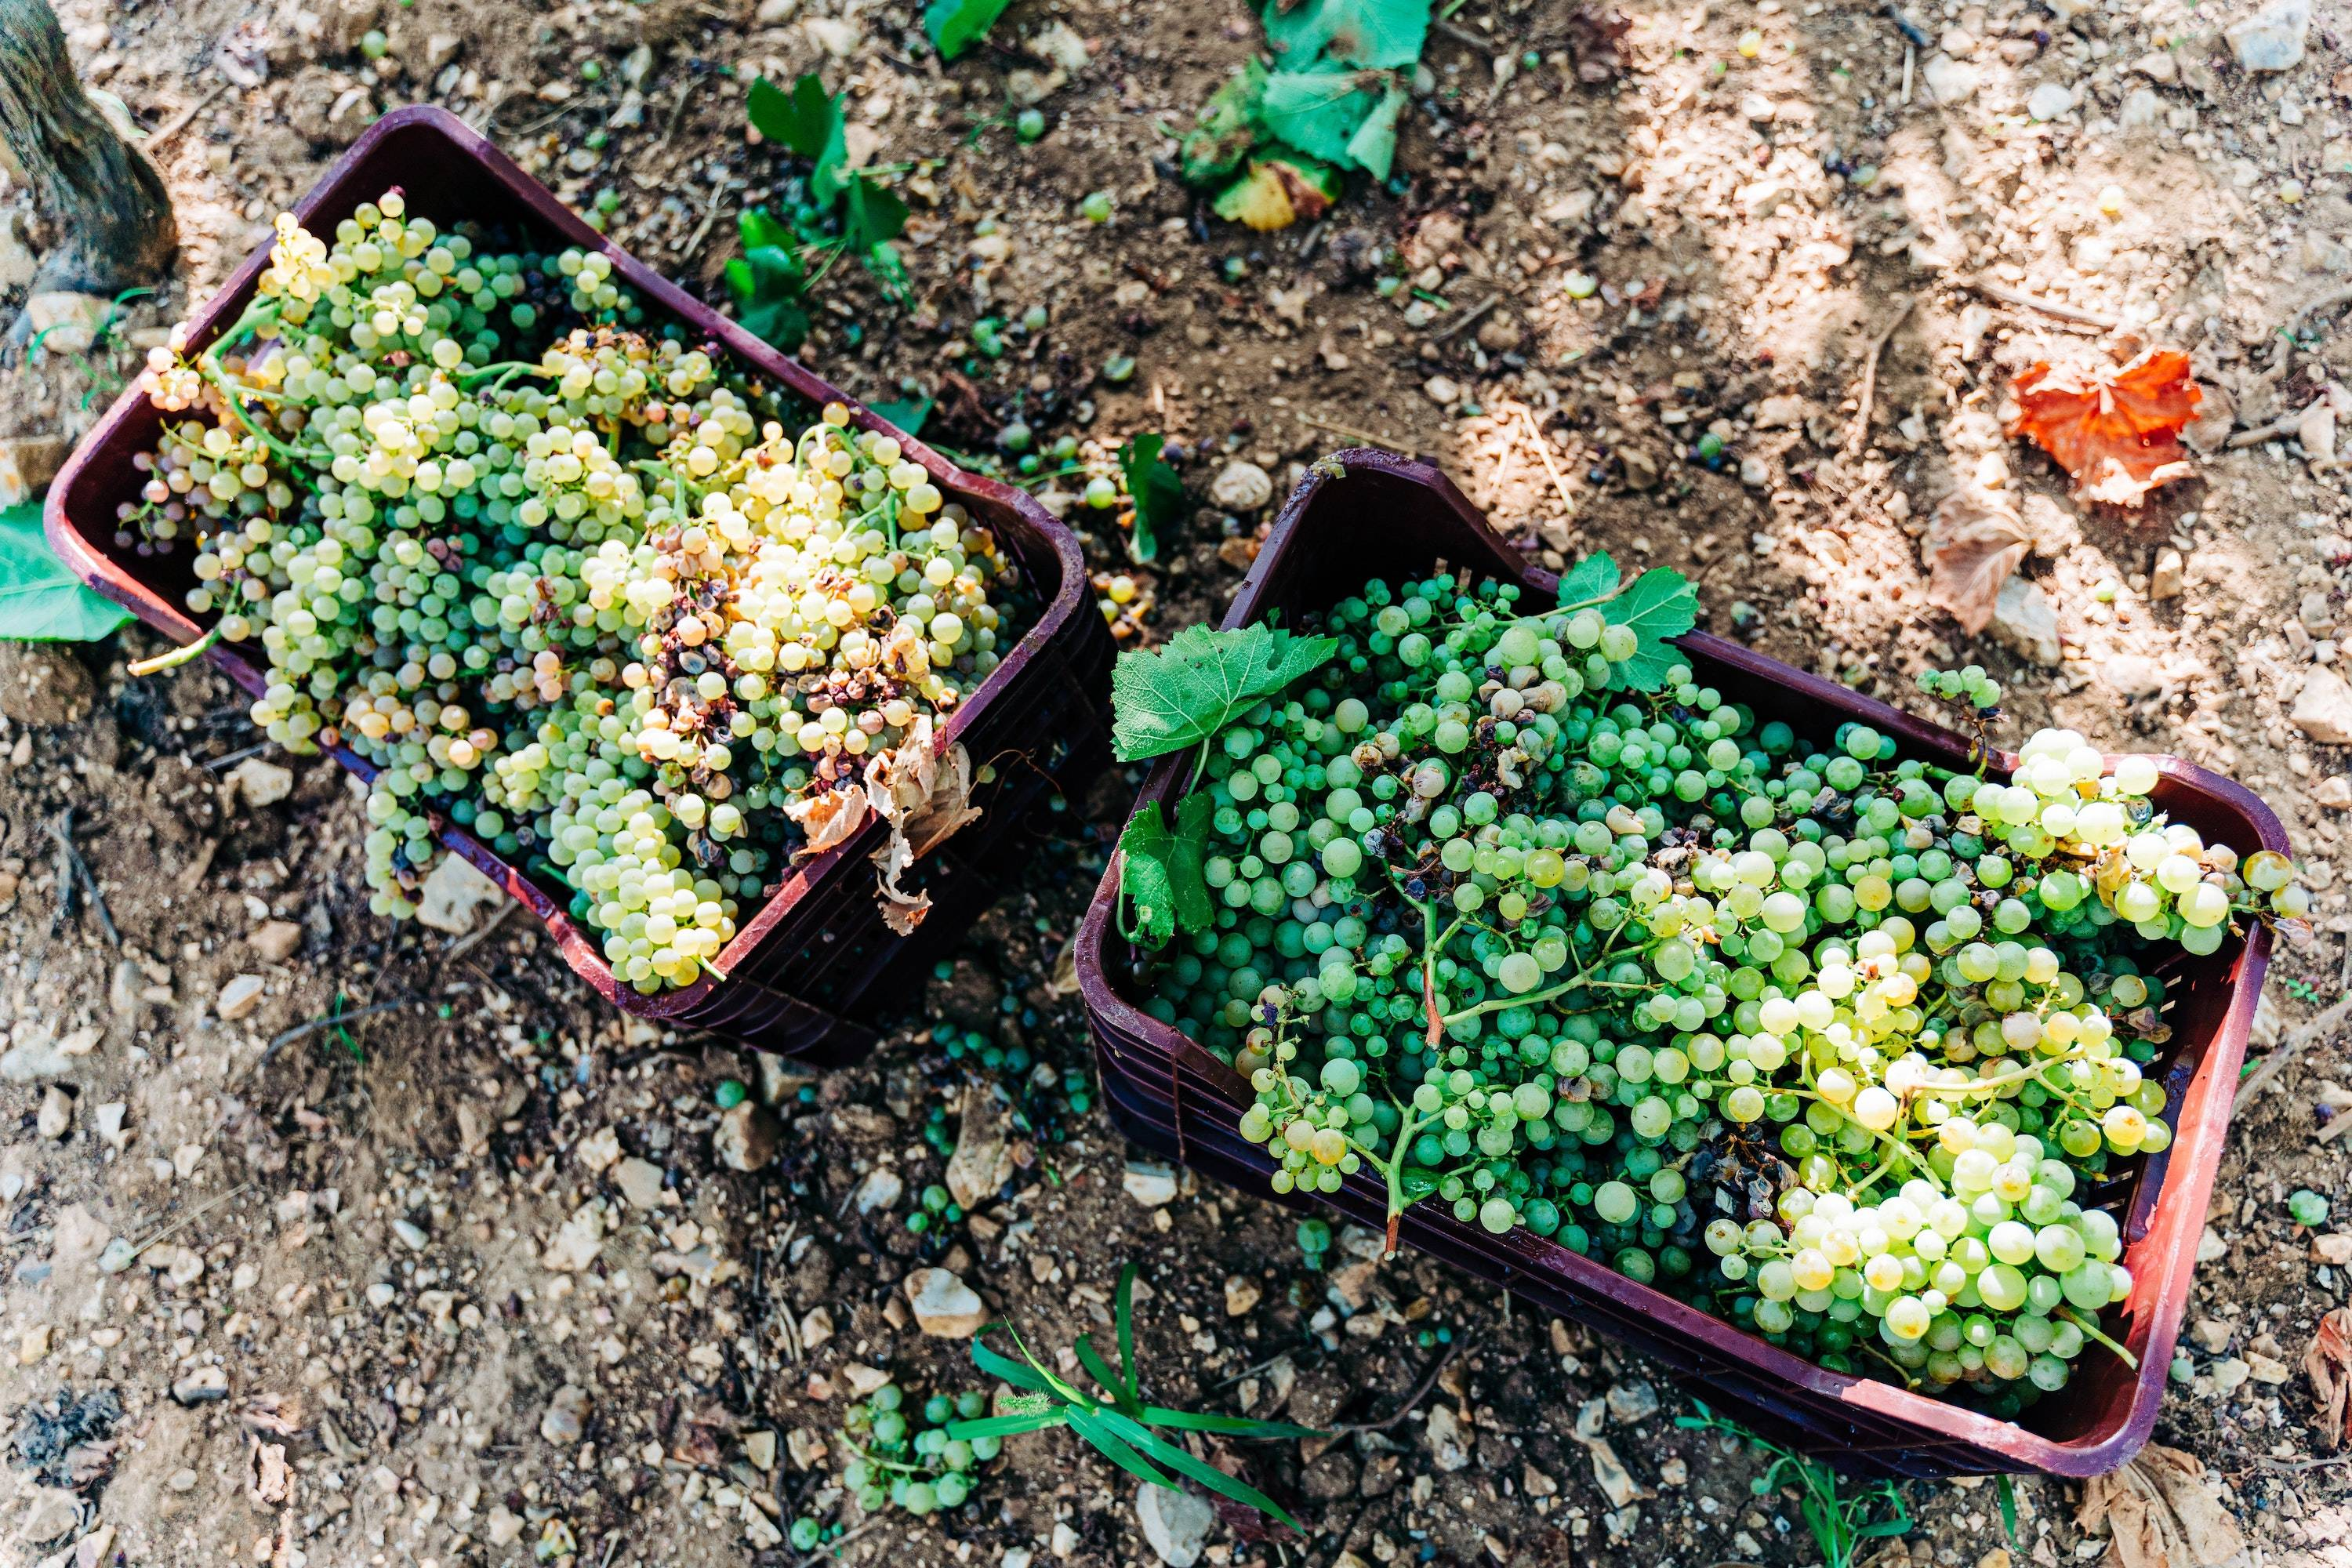 Two big baskets of green Sauvignon Blanc grapes during the initial stages of the winemaking process.